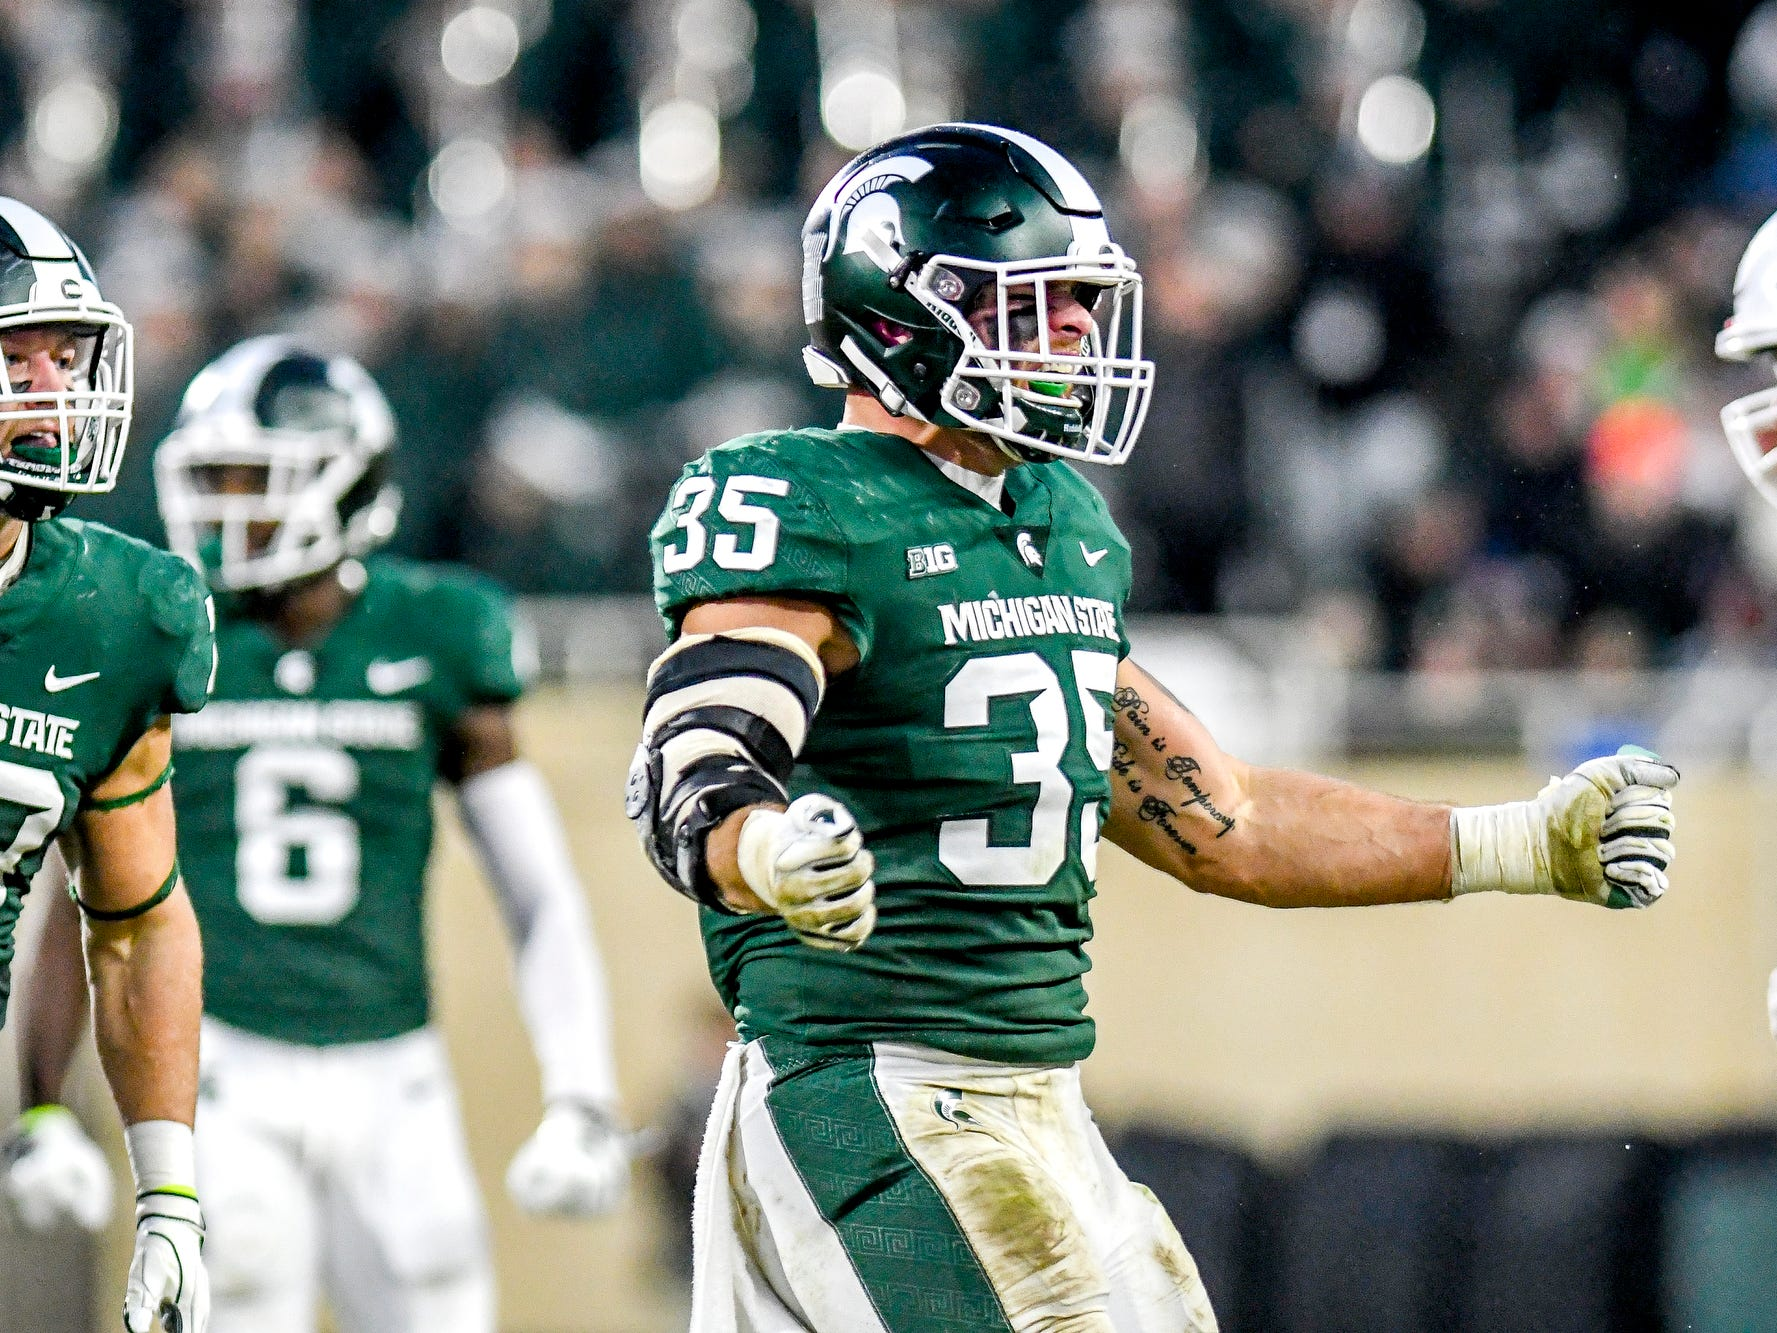 Michigan State's Joe Bachie celebrates after a tackle during the second quarter on Saturday, Nov. 24, 2018, at Spartan Stadium in East Lansing.